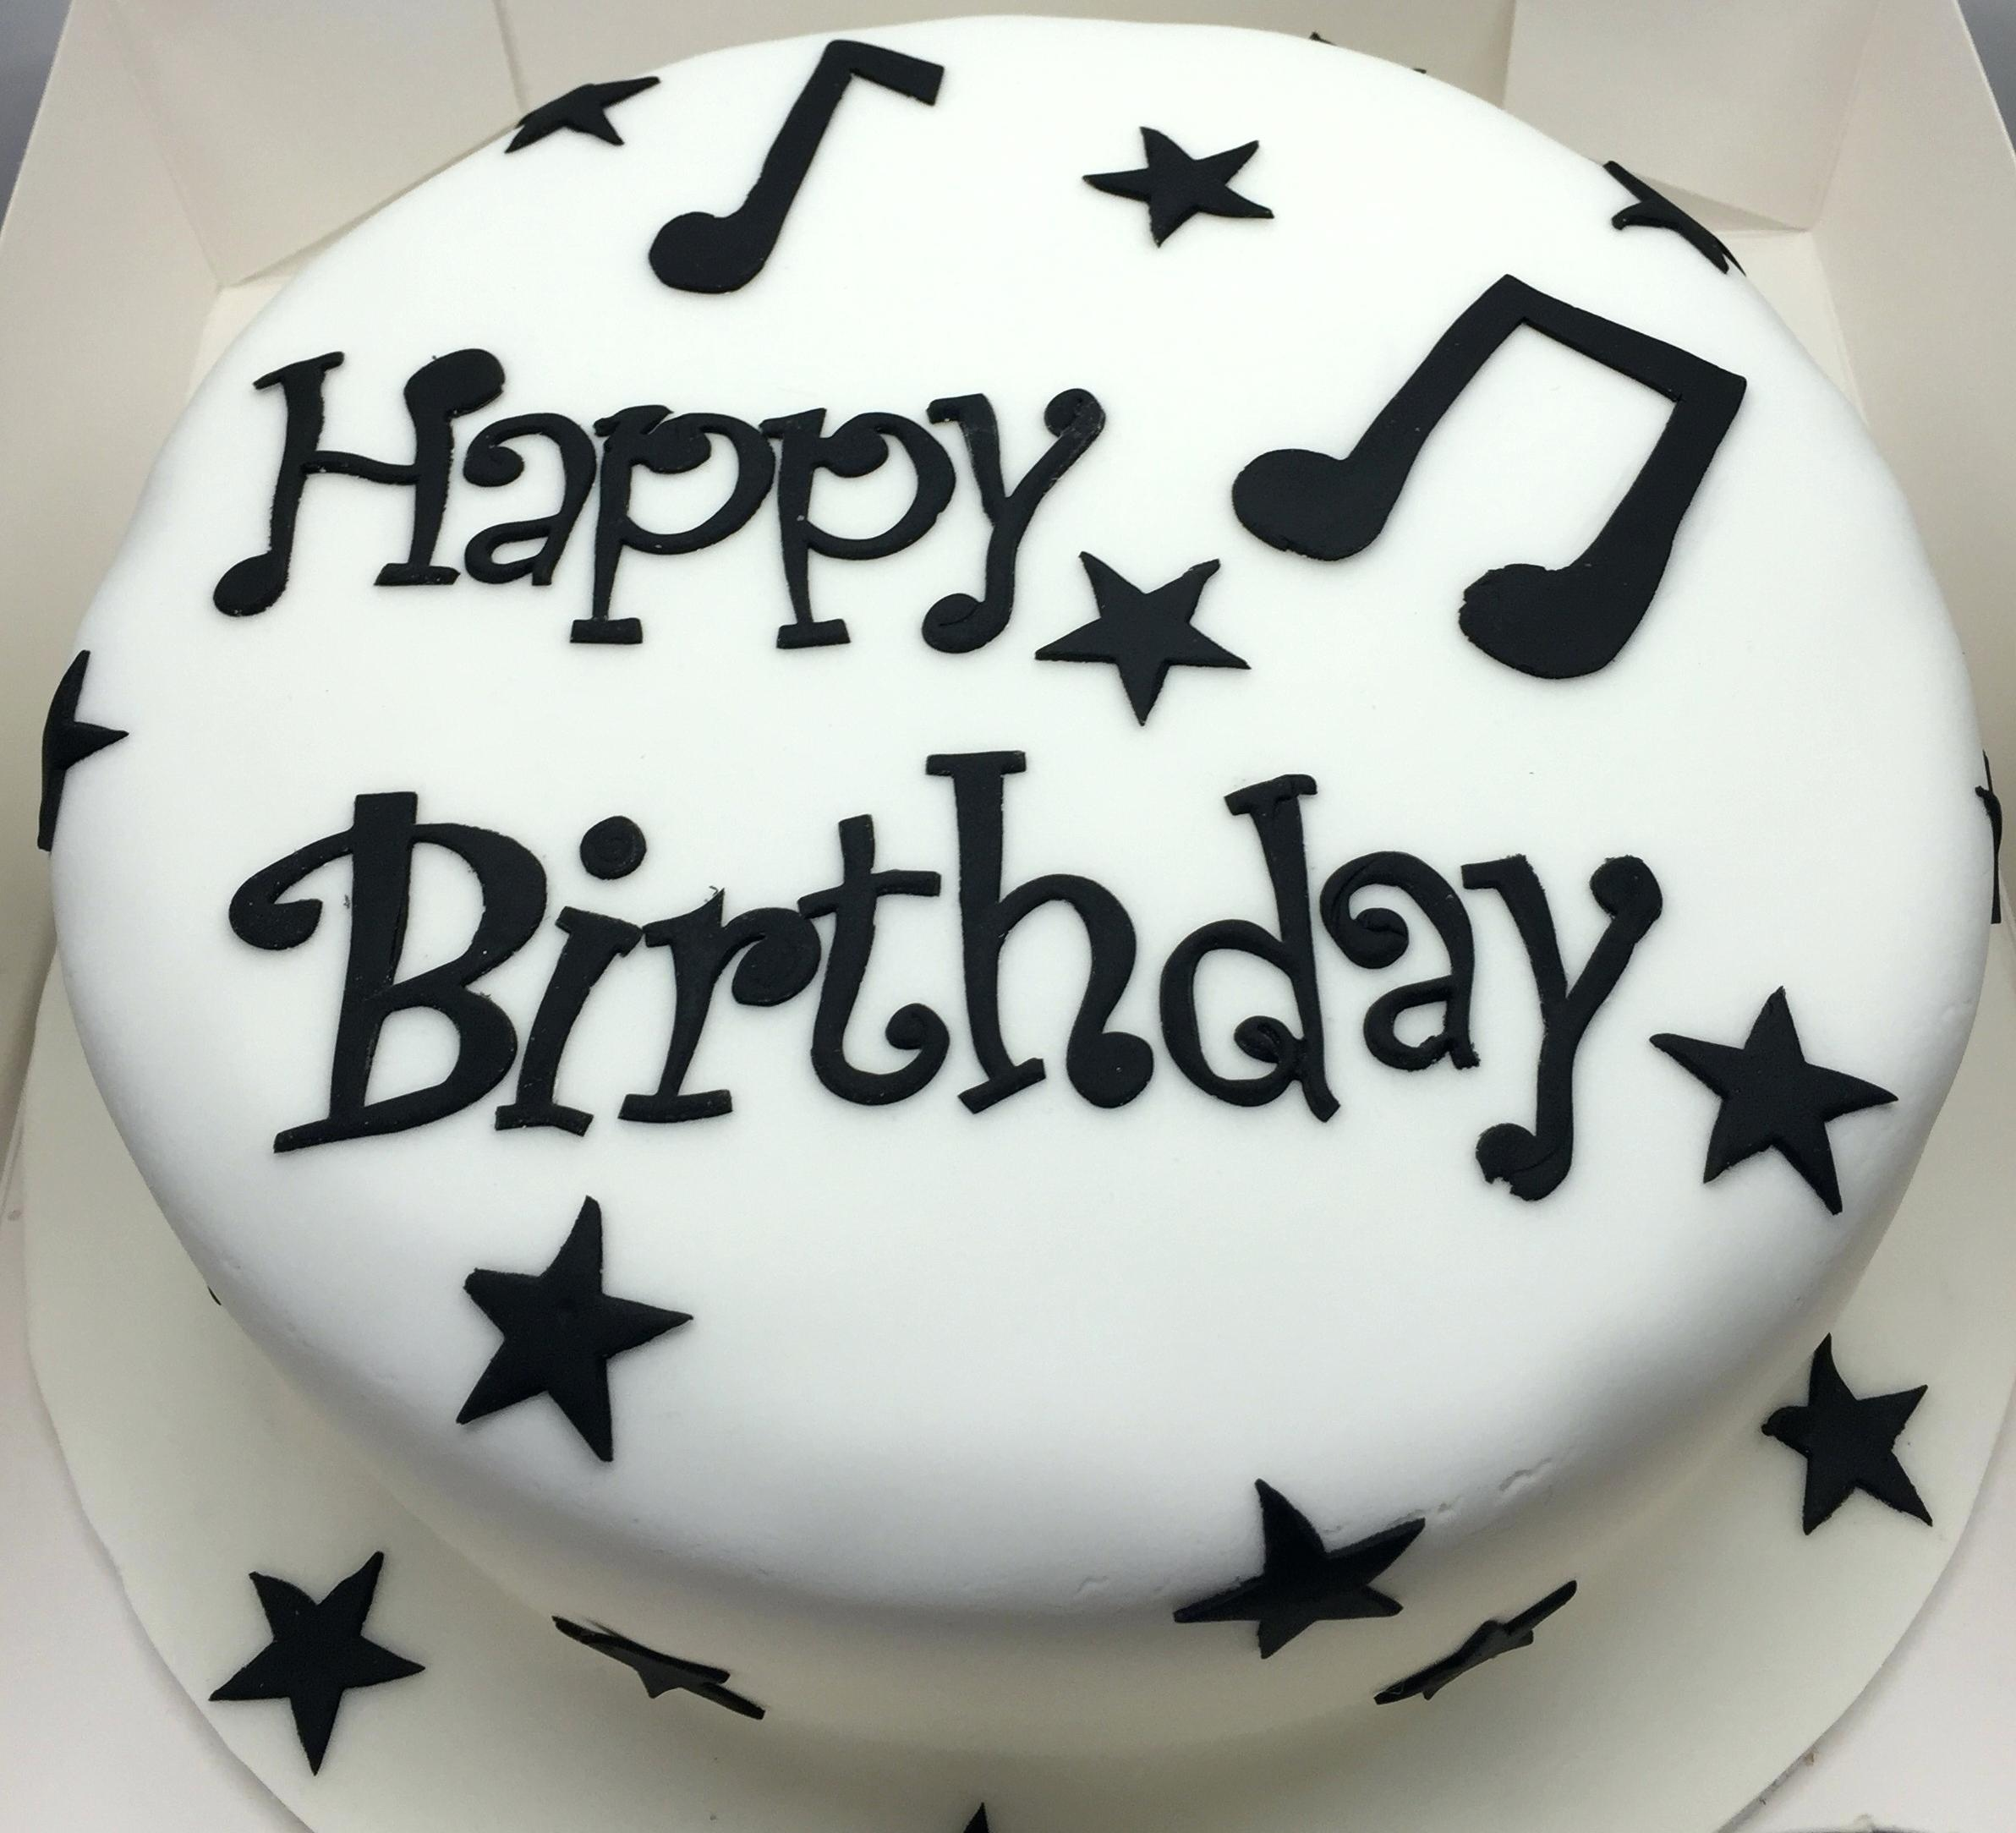 color combinations for birthday cakes ; classical-music-birthday-cakes-music-birthday-cake-hours-of-fun-baking-just-for-fun-white-and-black-color-combination-design